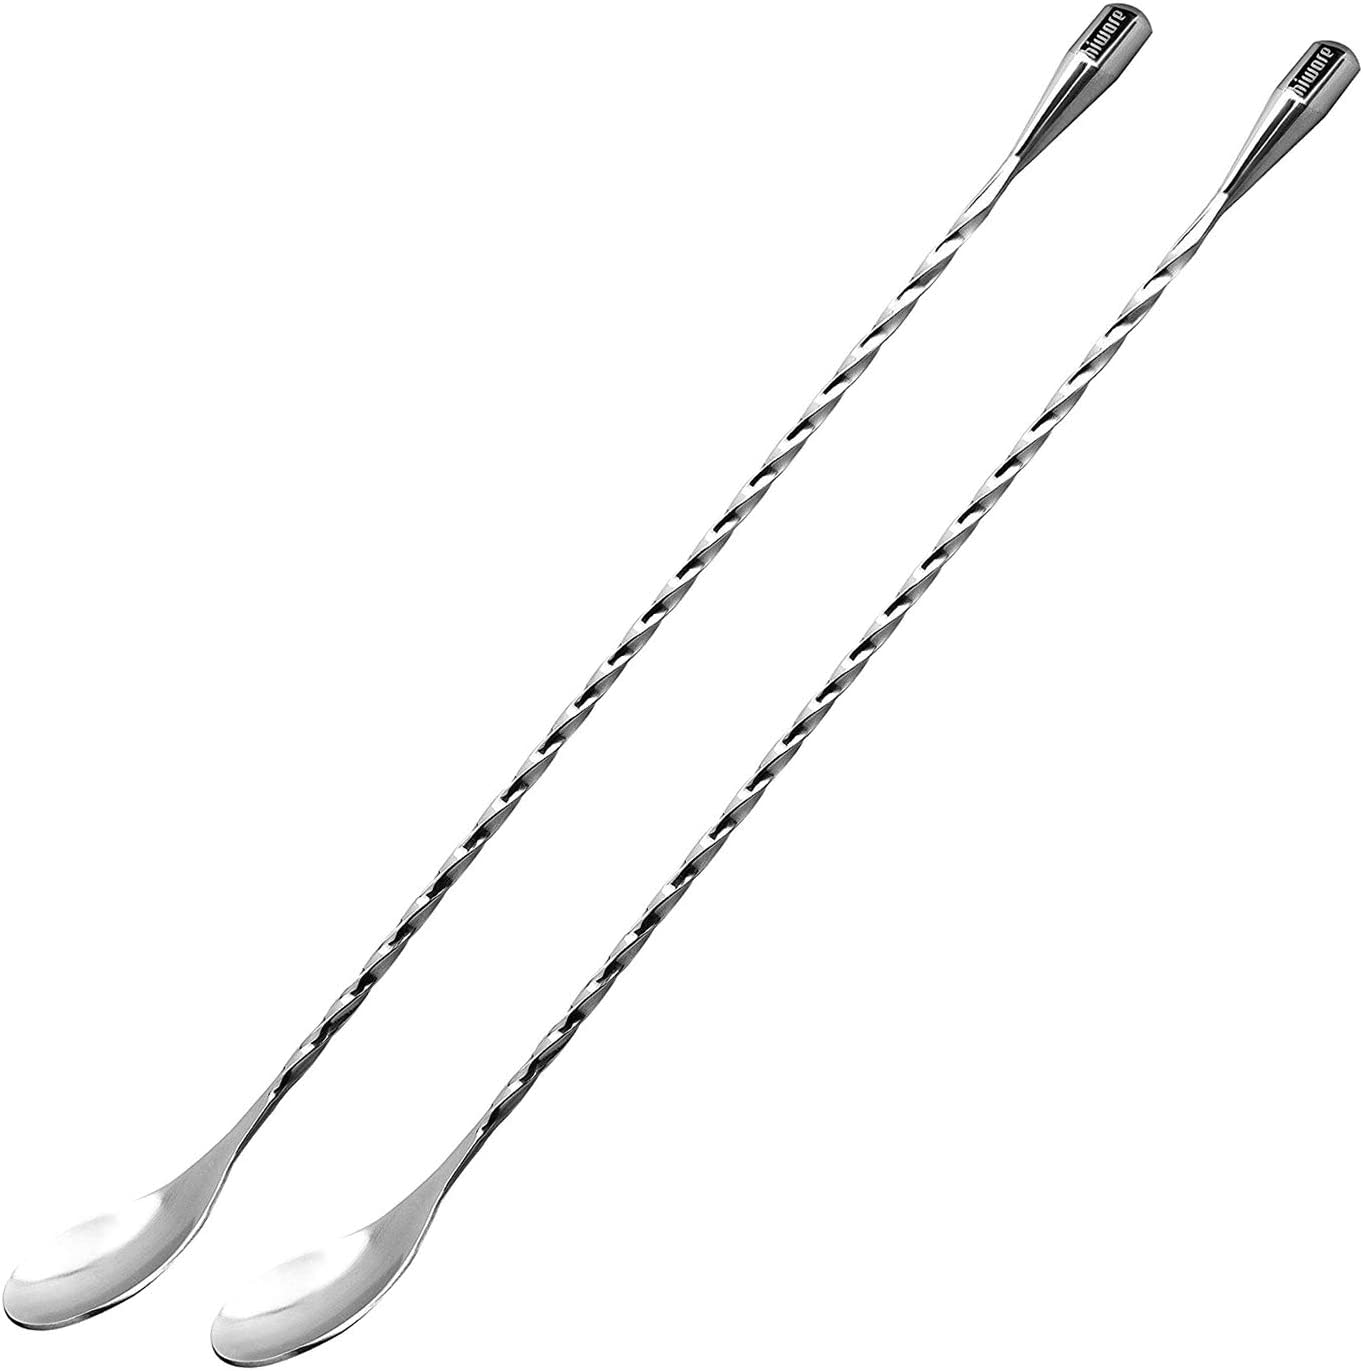 Hiware 2-Pack 12 Inches Stainless Steel Mixing Spoons, Spiral Pattern Bar Cocktail Shaker Spoon